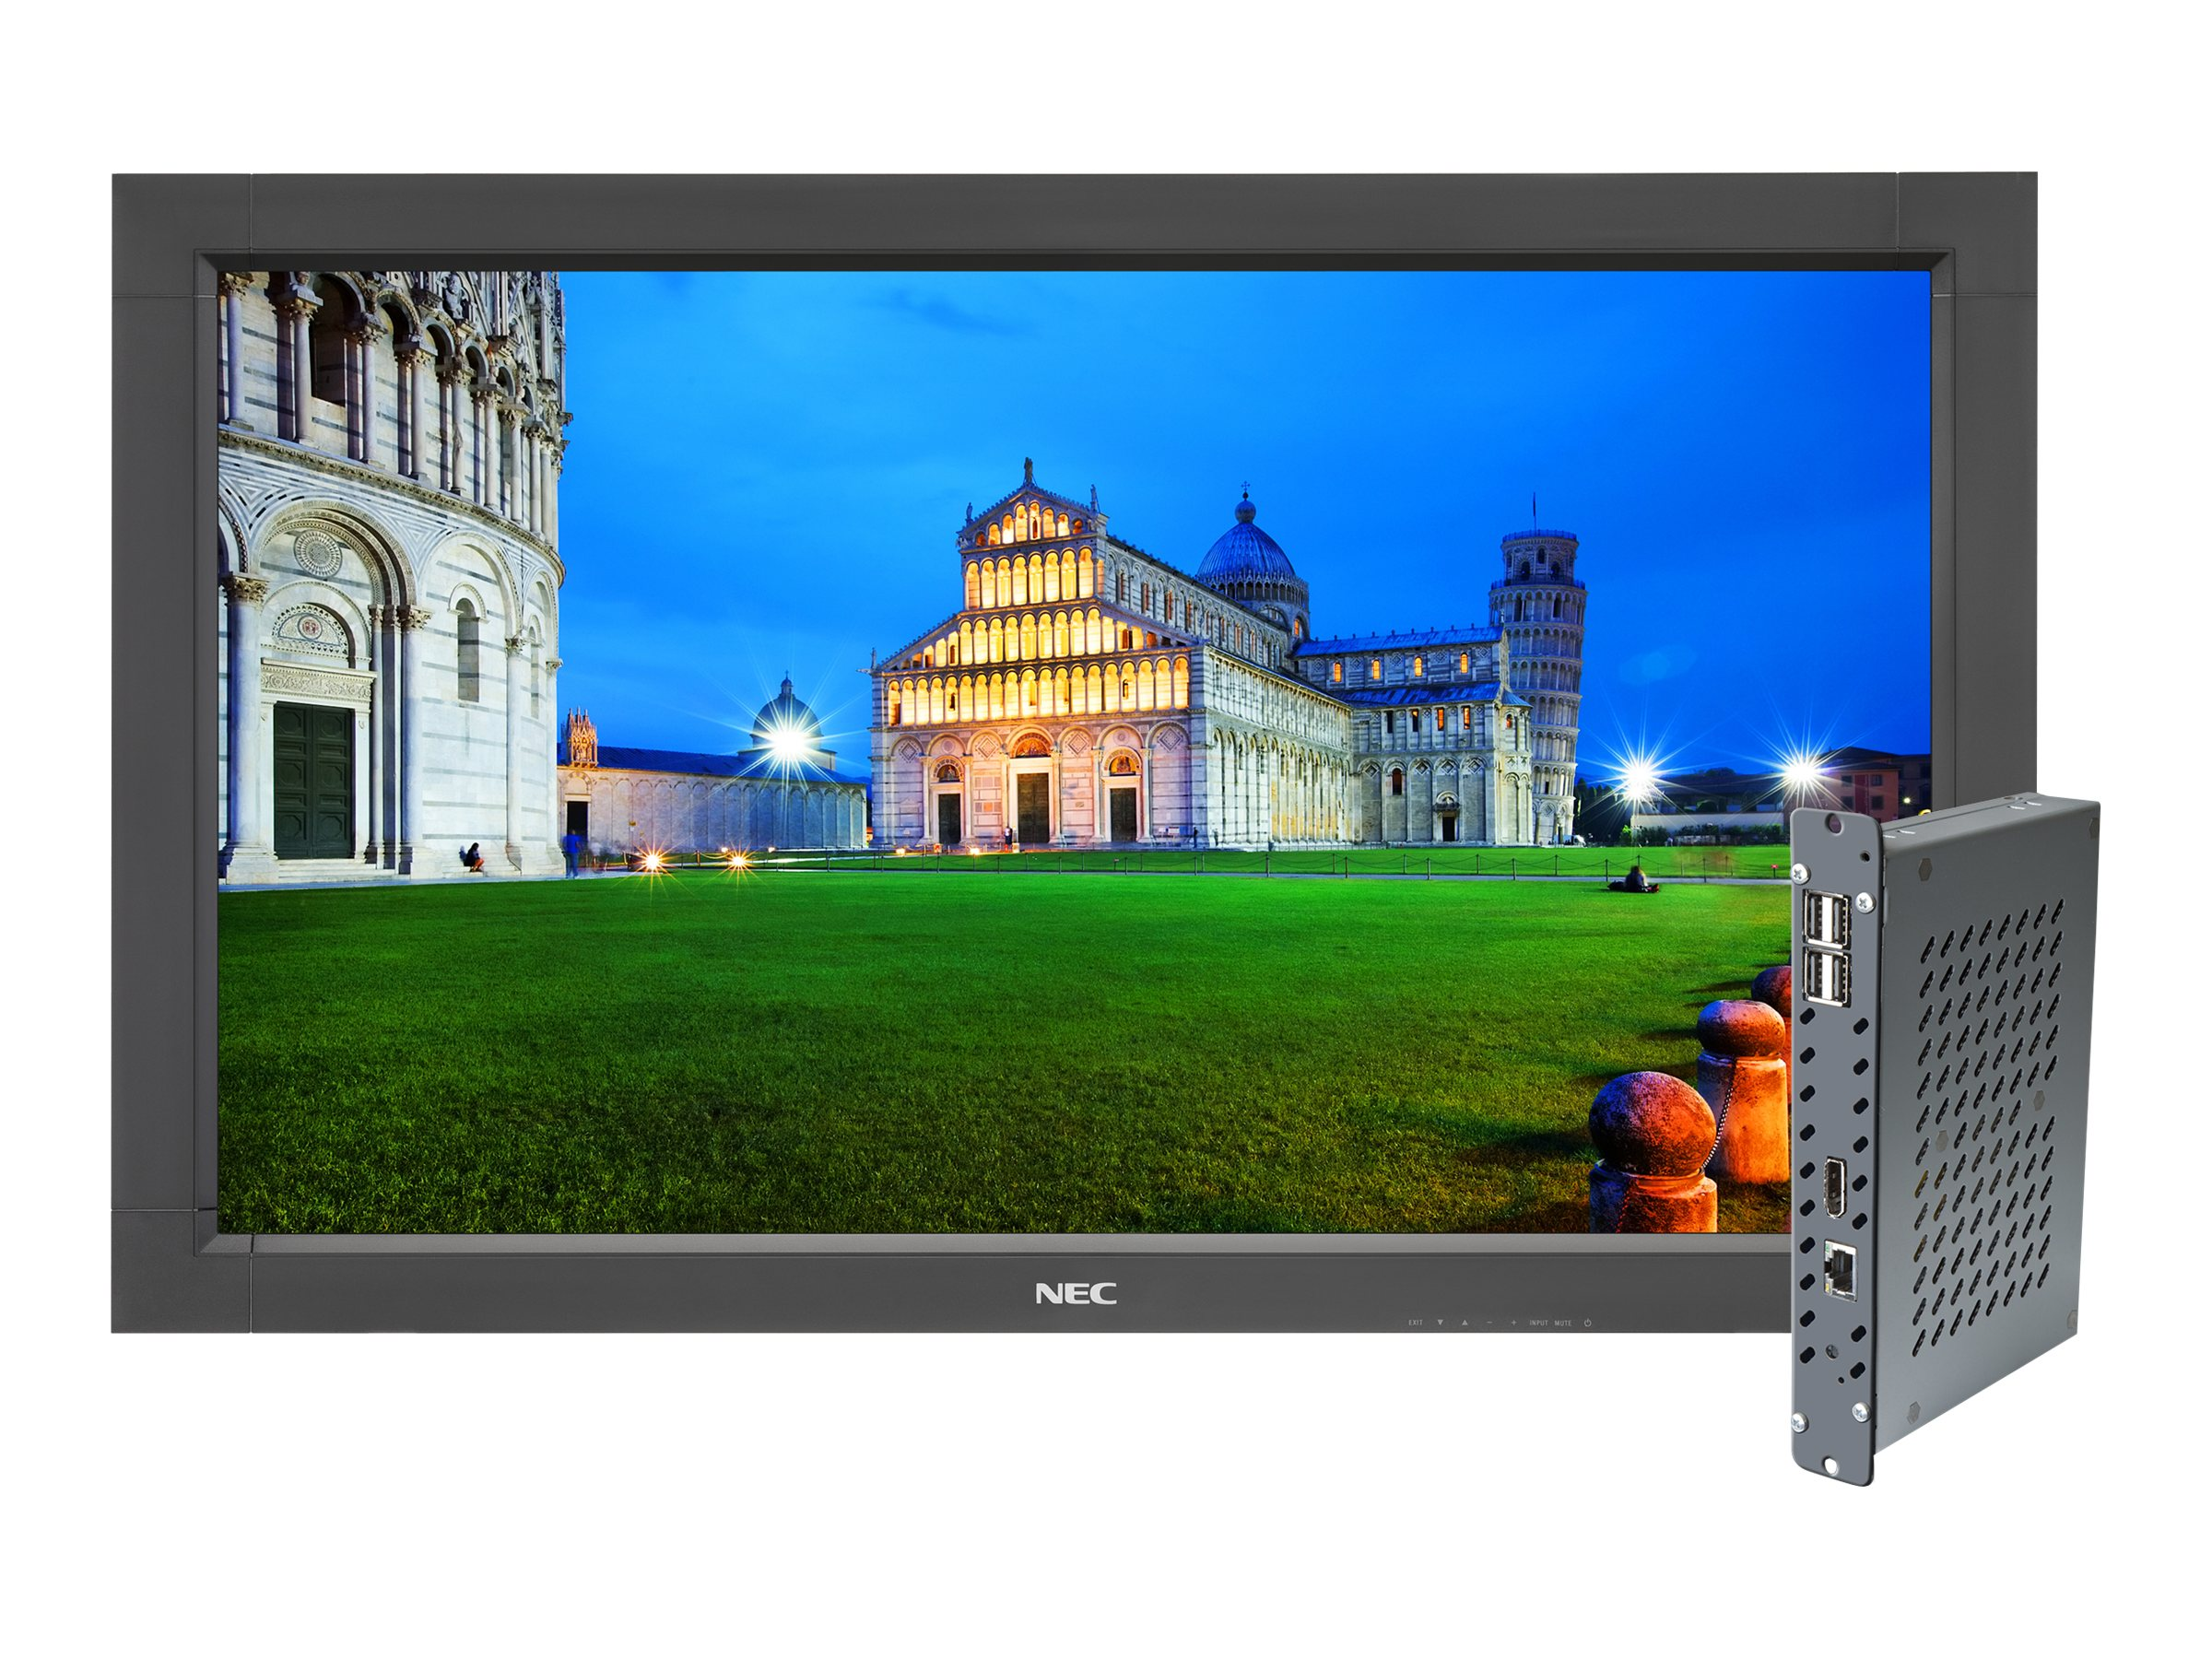 NEC 32 V323-PC Full HD LED-LCD Monitor, Black with Integrated Computer, V323-PC